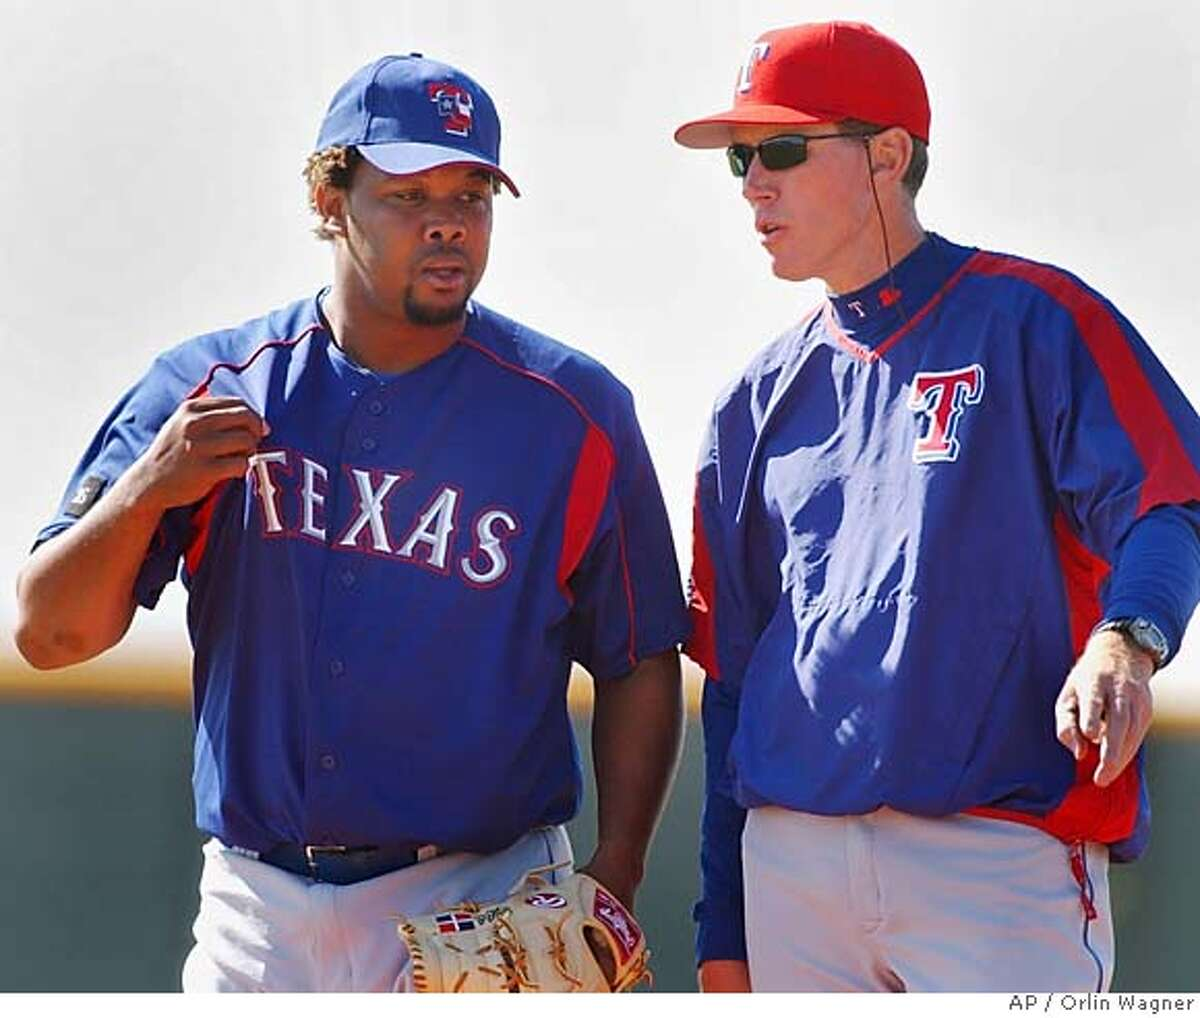 Texas Rangers pitcher Francisco Cordero talks with pitching coach Orel Hershiser during a simulated game at spring training in Surprise, Ariz., Monday, March 14, 2005. It was the first time the closer has faced batters this spring. (AP Photo/Orlin Wagner) Ran on: 03-20-2005 Rangers pitcher Francisco Cordero (left) talks with pitching coach Orel Hershiser during a simulated game in spring training. The Rangers are confident Cordero will be ready on Opening Day.